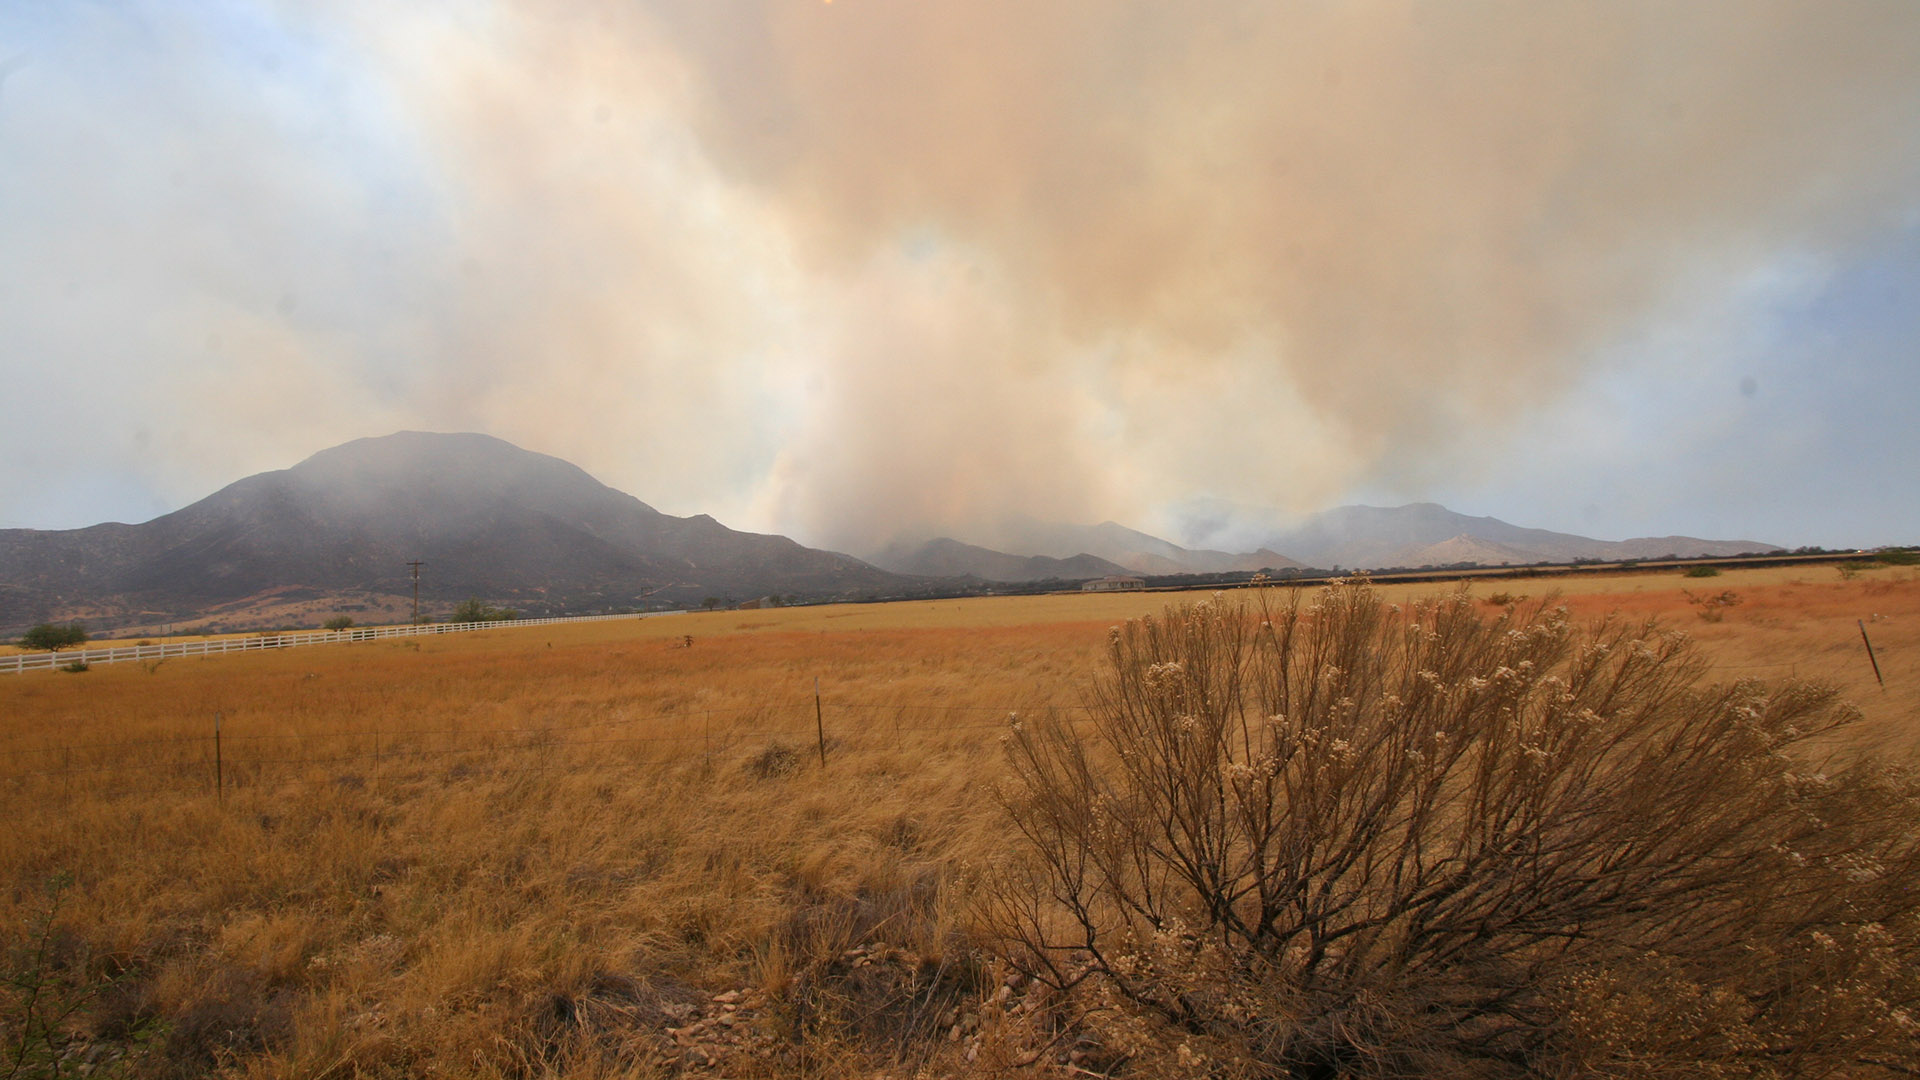 The Wallow Fire burns in the distance, in 2011.